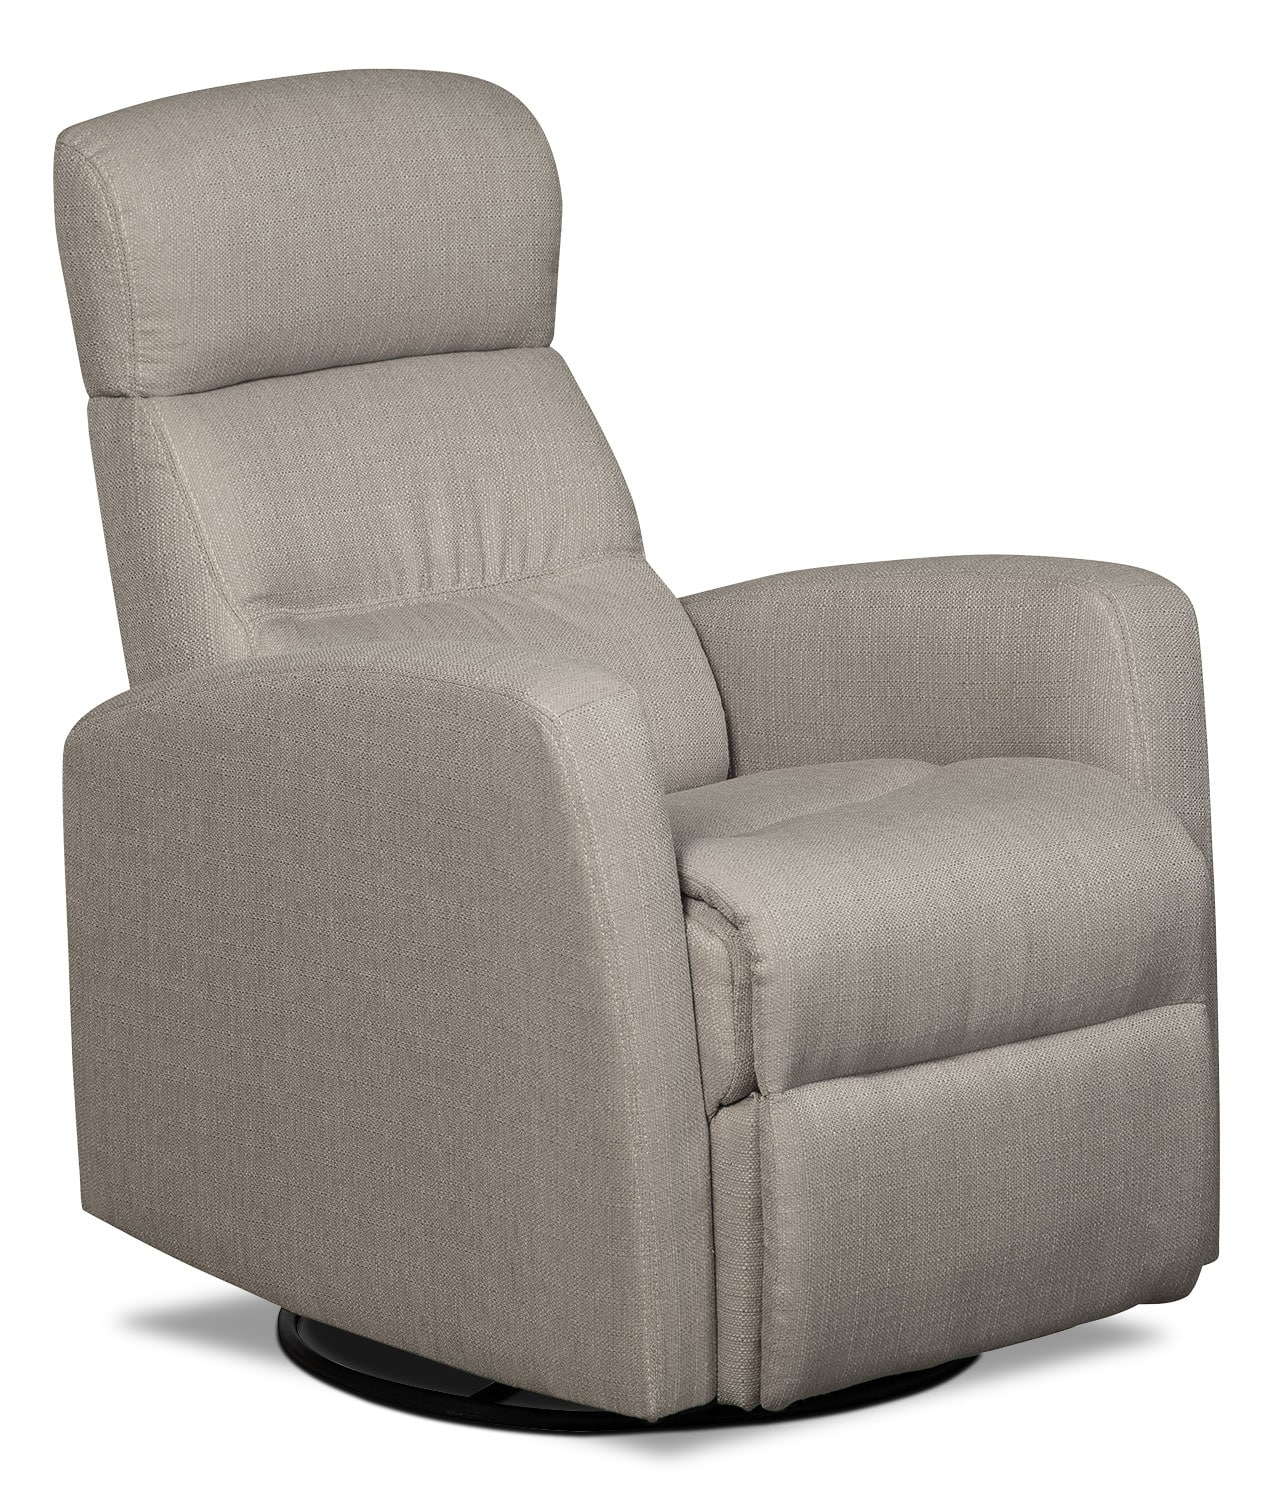 Penny Linen-Look Fabric Swivel Rocker Reclining Chair – Taupe